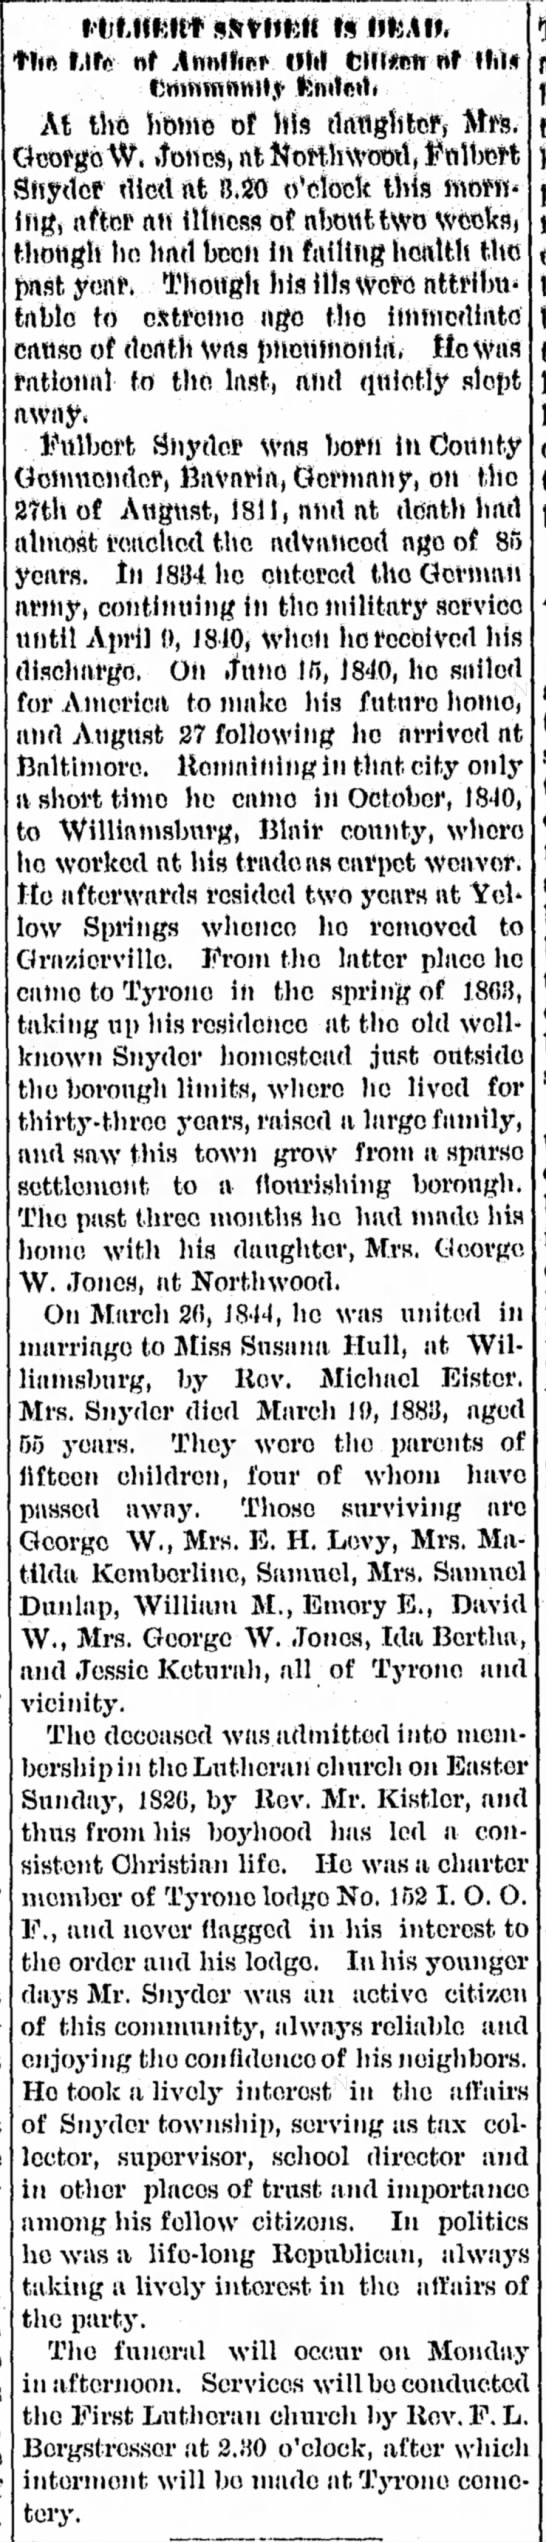 Obituary of Fulbert Snyder b. 27 aug 1811 d. 25 Aug 1896 -